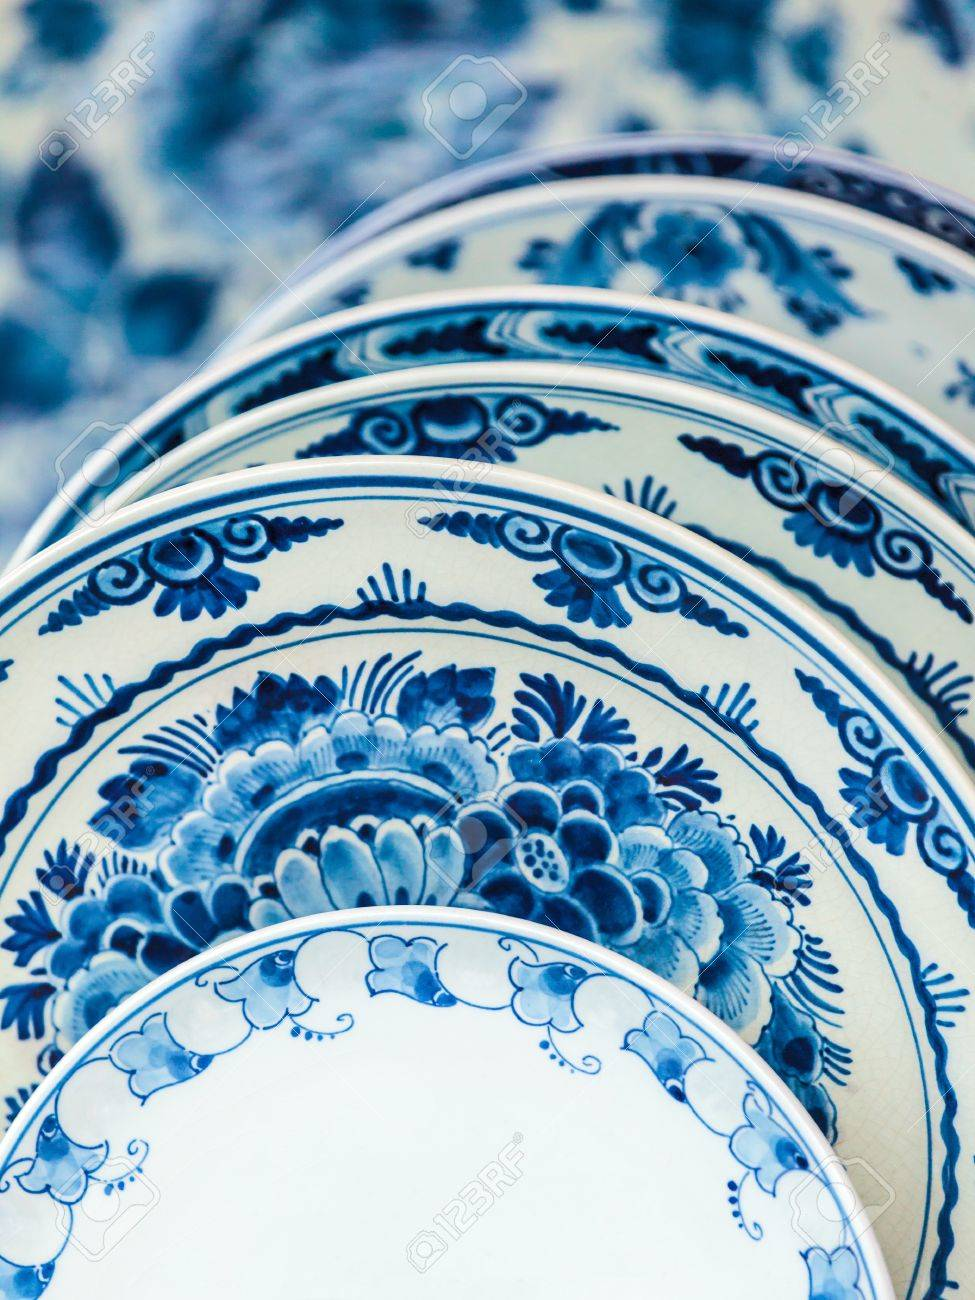 Ancient Dutch porcelain blue and white dishware from Delft Stock Photo - 18033071